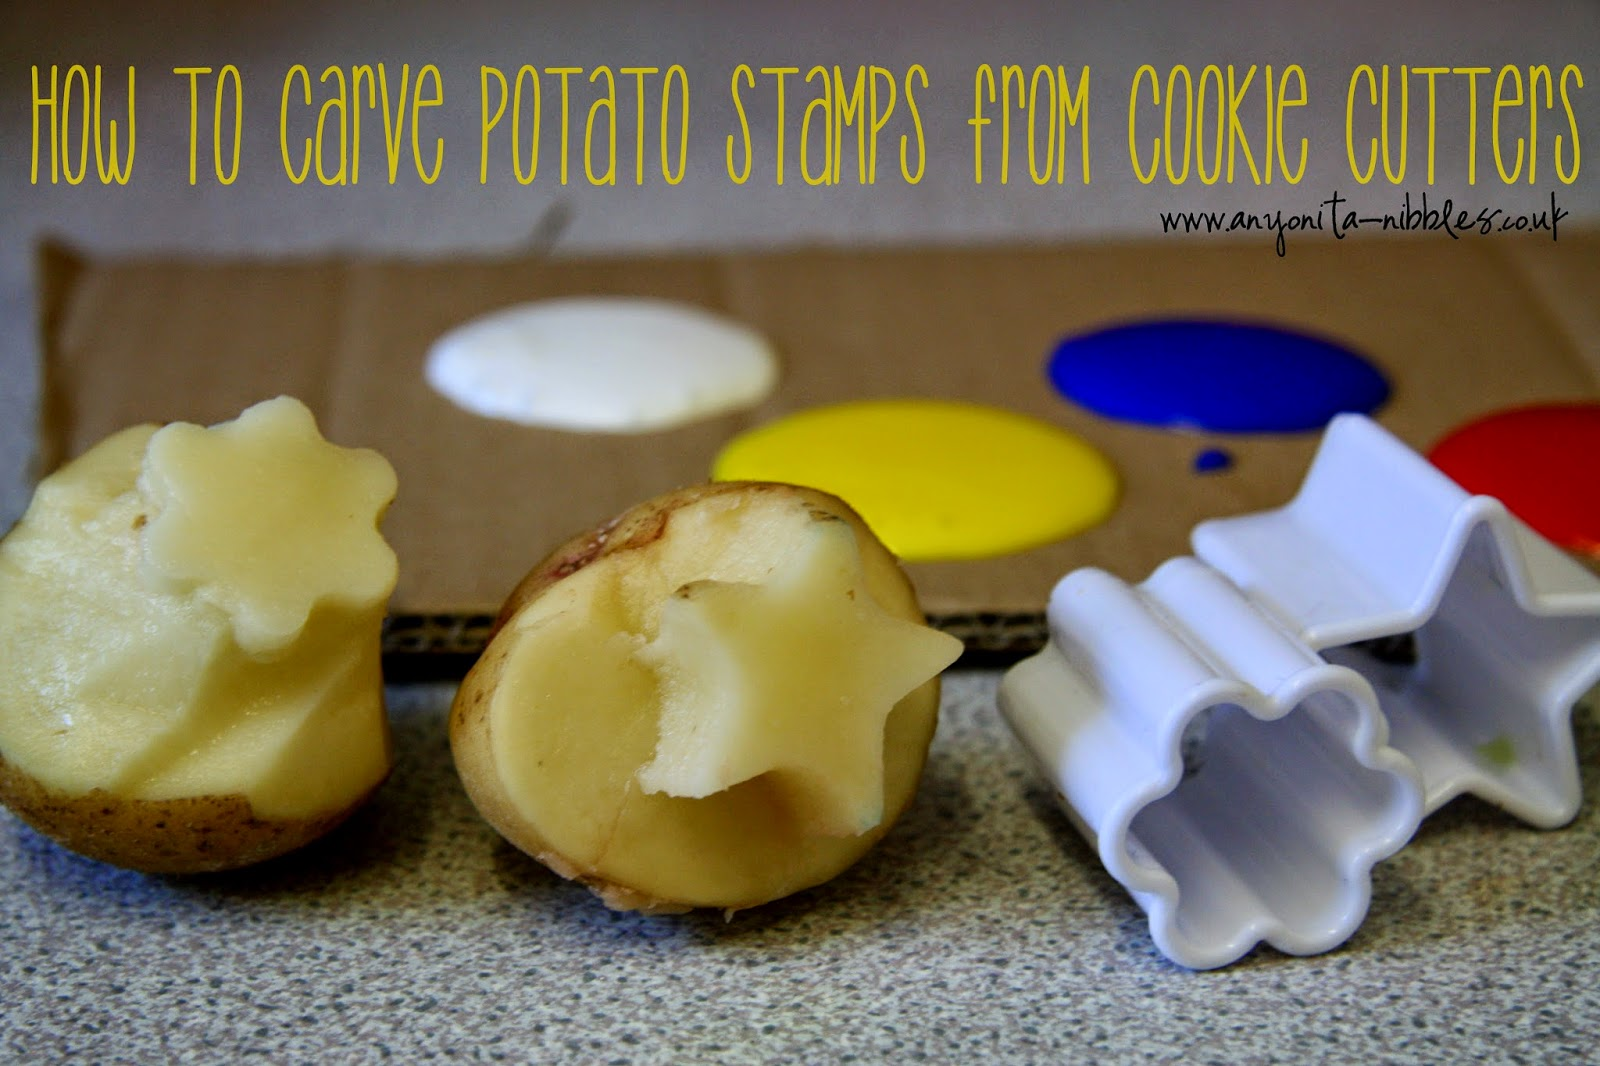 How to Carve Potato Stamps from Cookie Cutters from www.anyonita-nibbles.co.uk